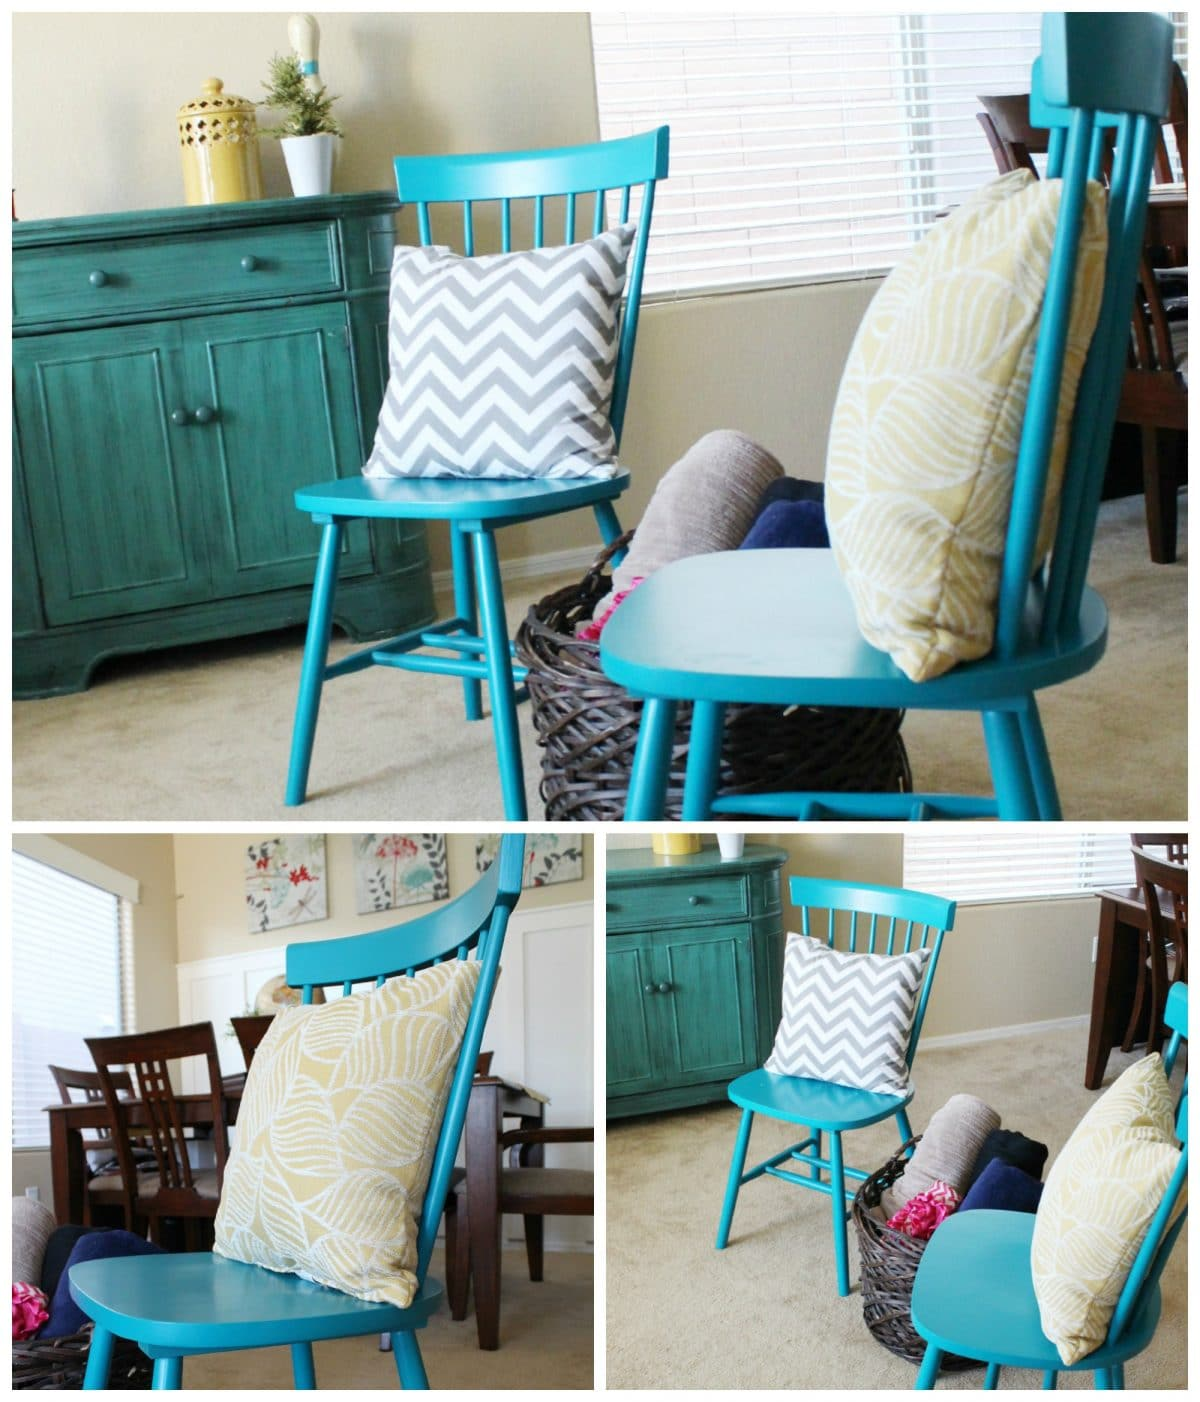 Versatile Furniture Fashion Puttogether Somewhat Simple